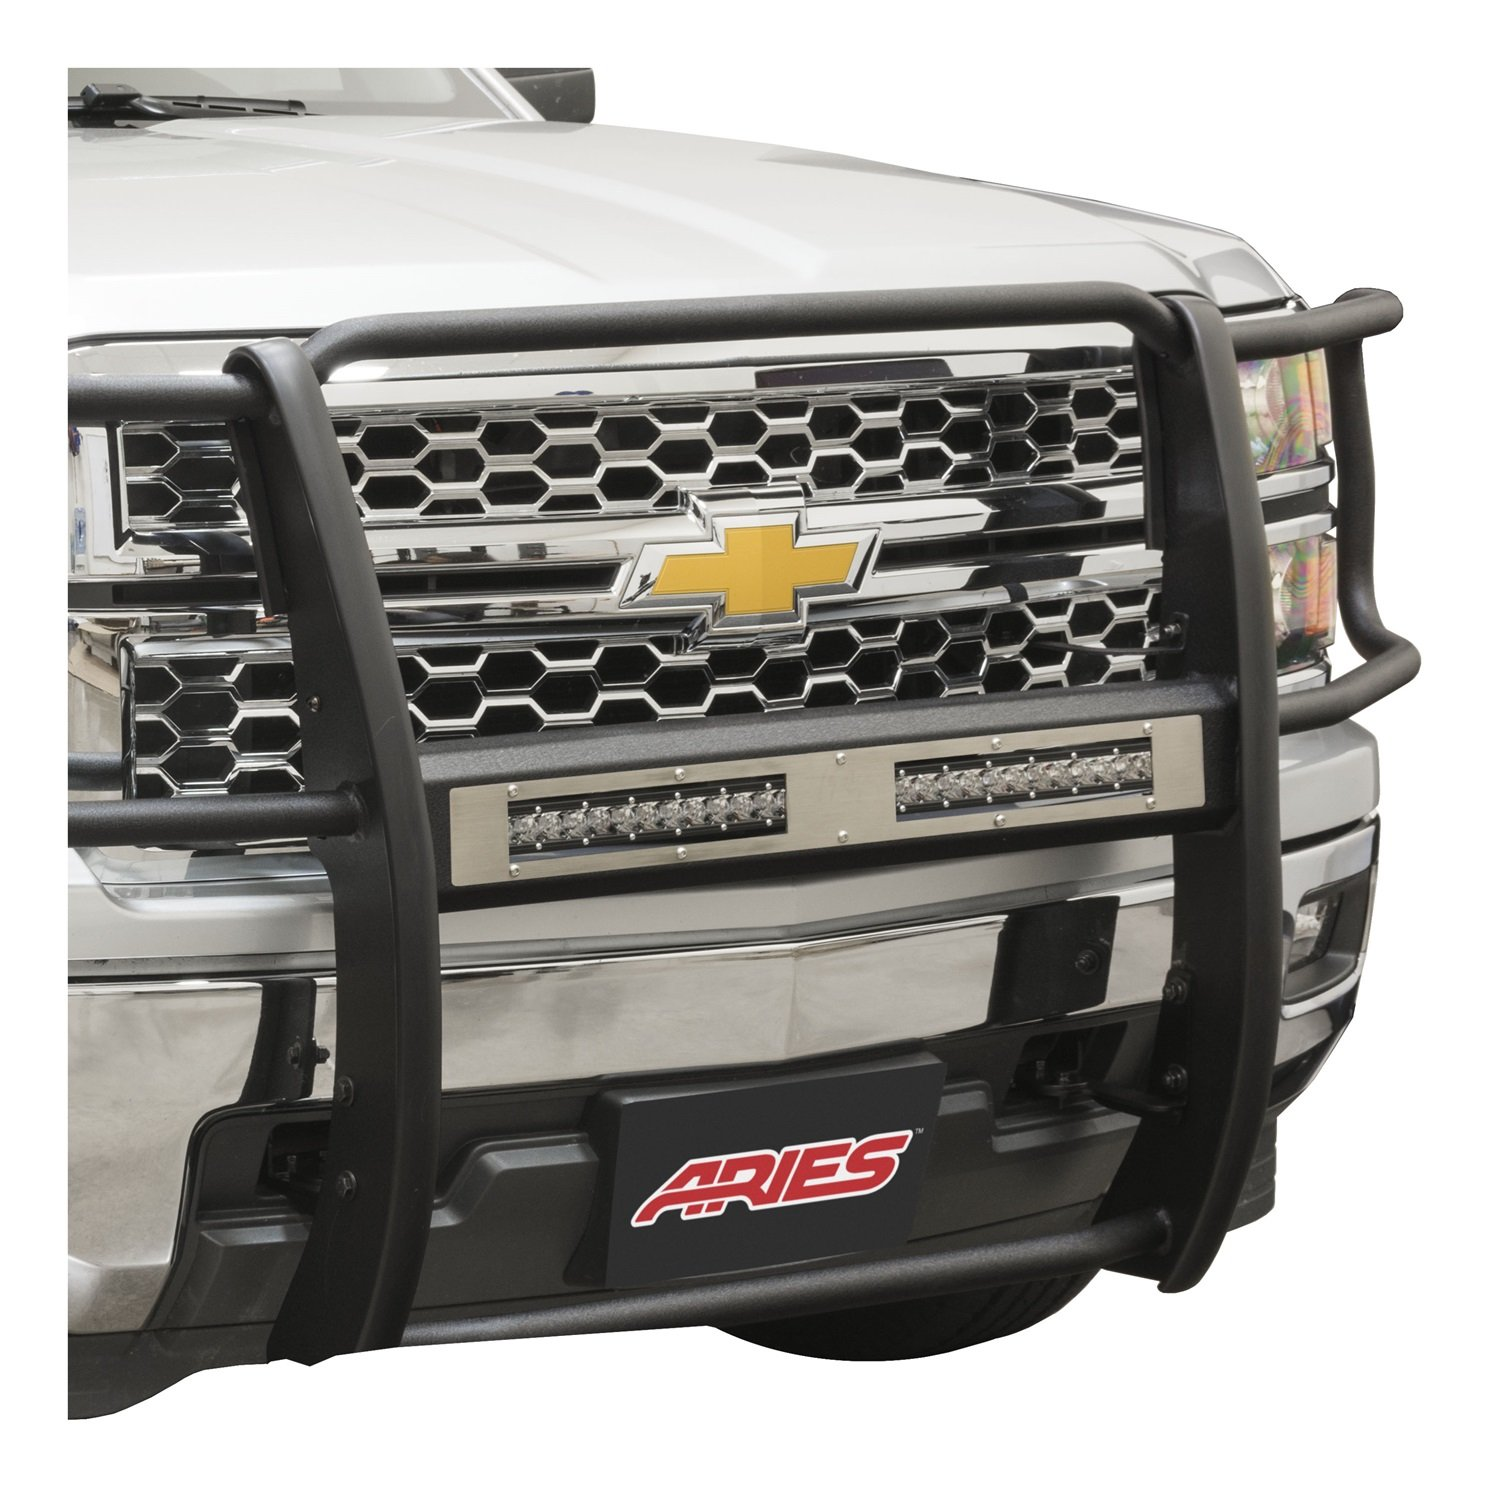 ARIES PC10OS Pro Series 10 Brushed Stainless Steel Grille Guard Cover Plate